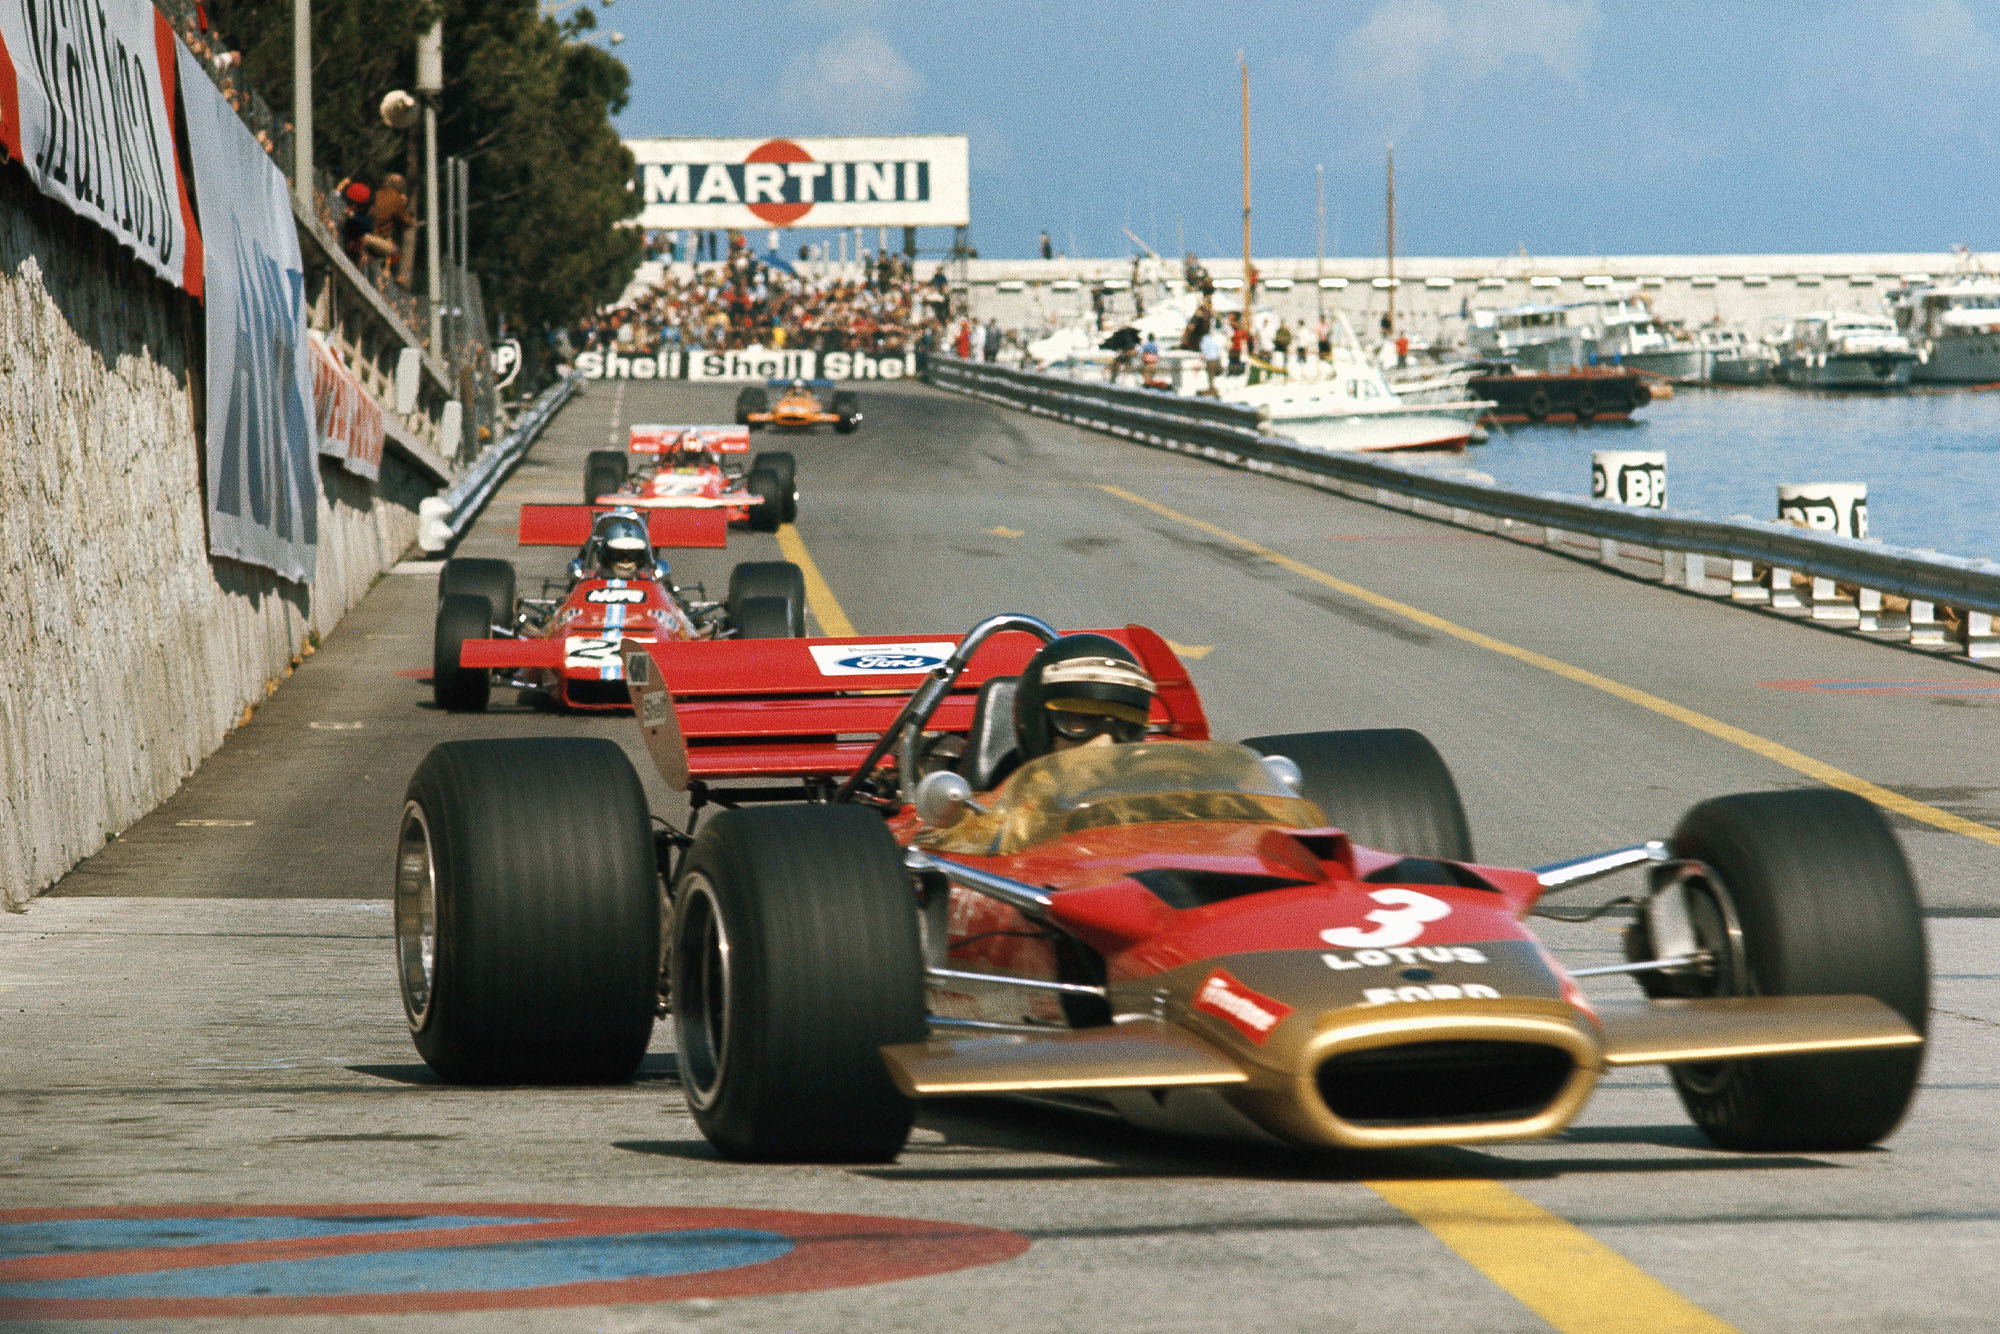 Jochen Rindt leads the pack